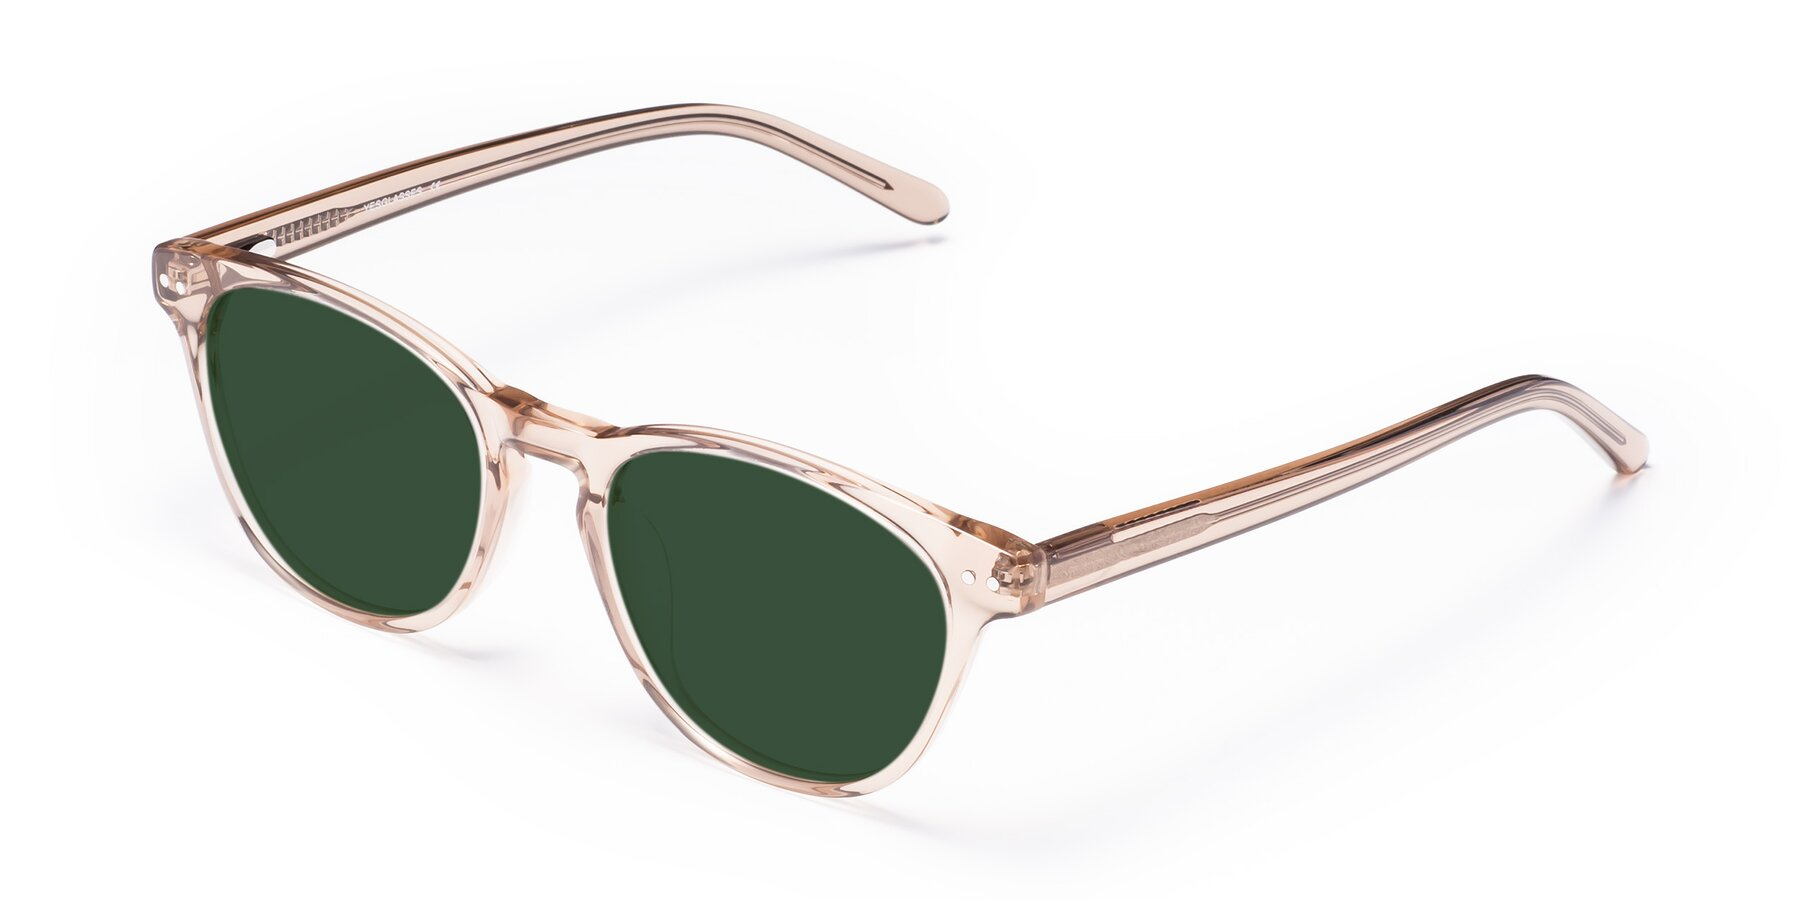 Angle of Blaze in light Brown with Green Tinted Lenses